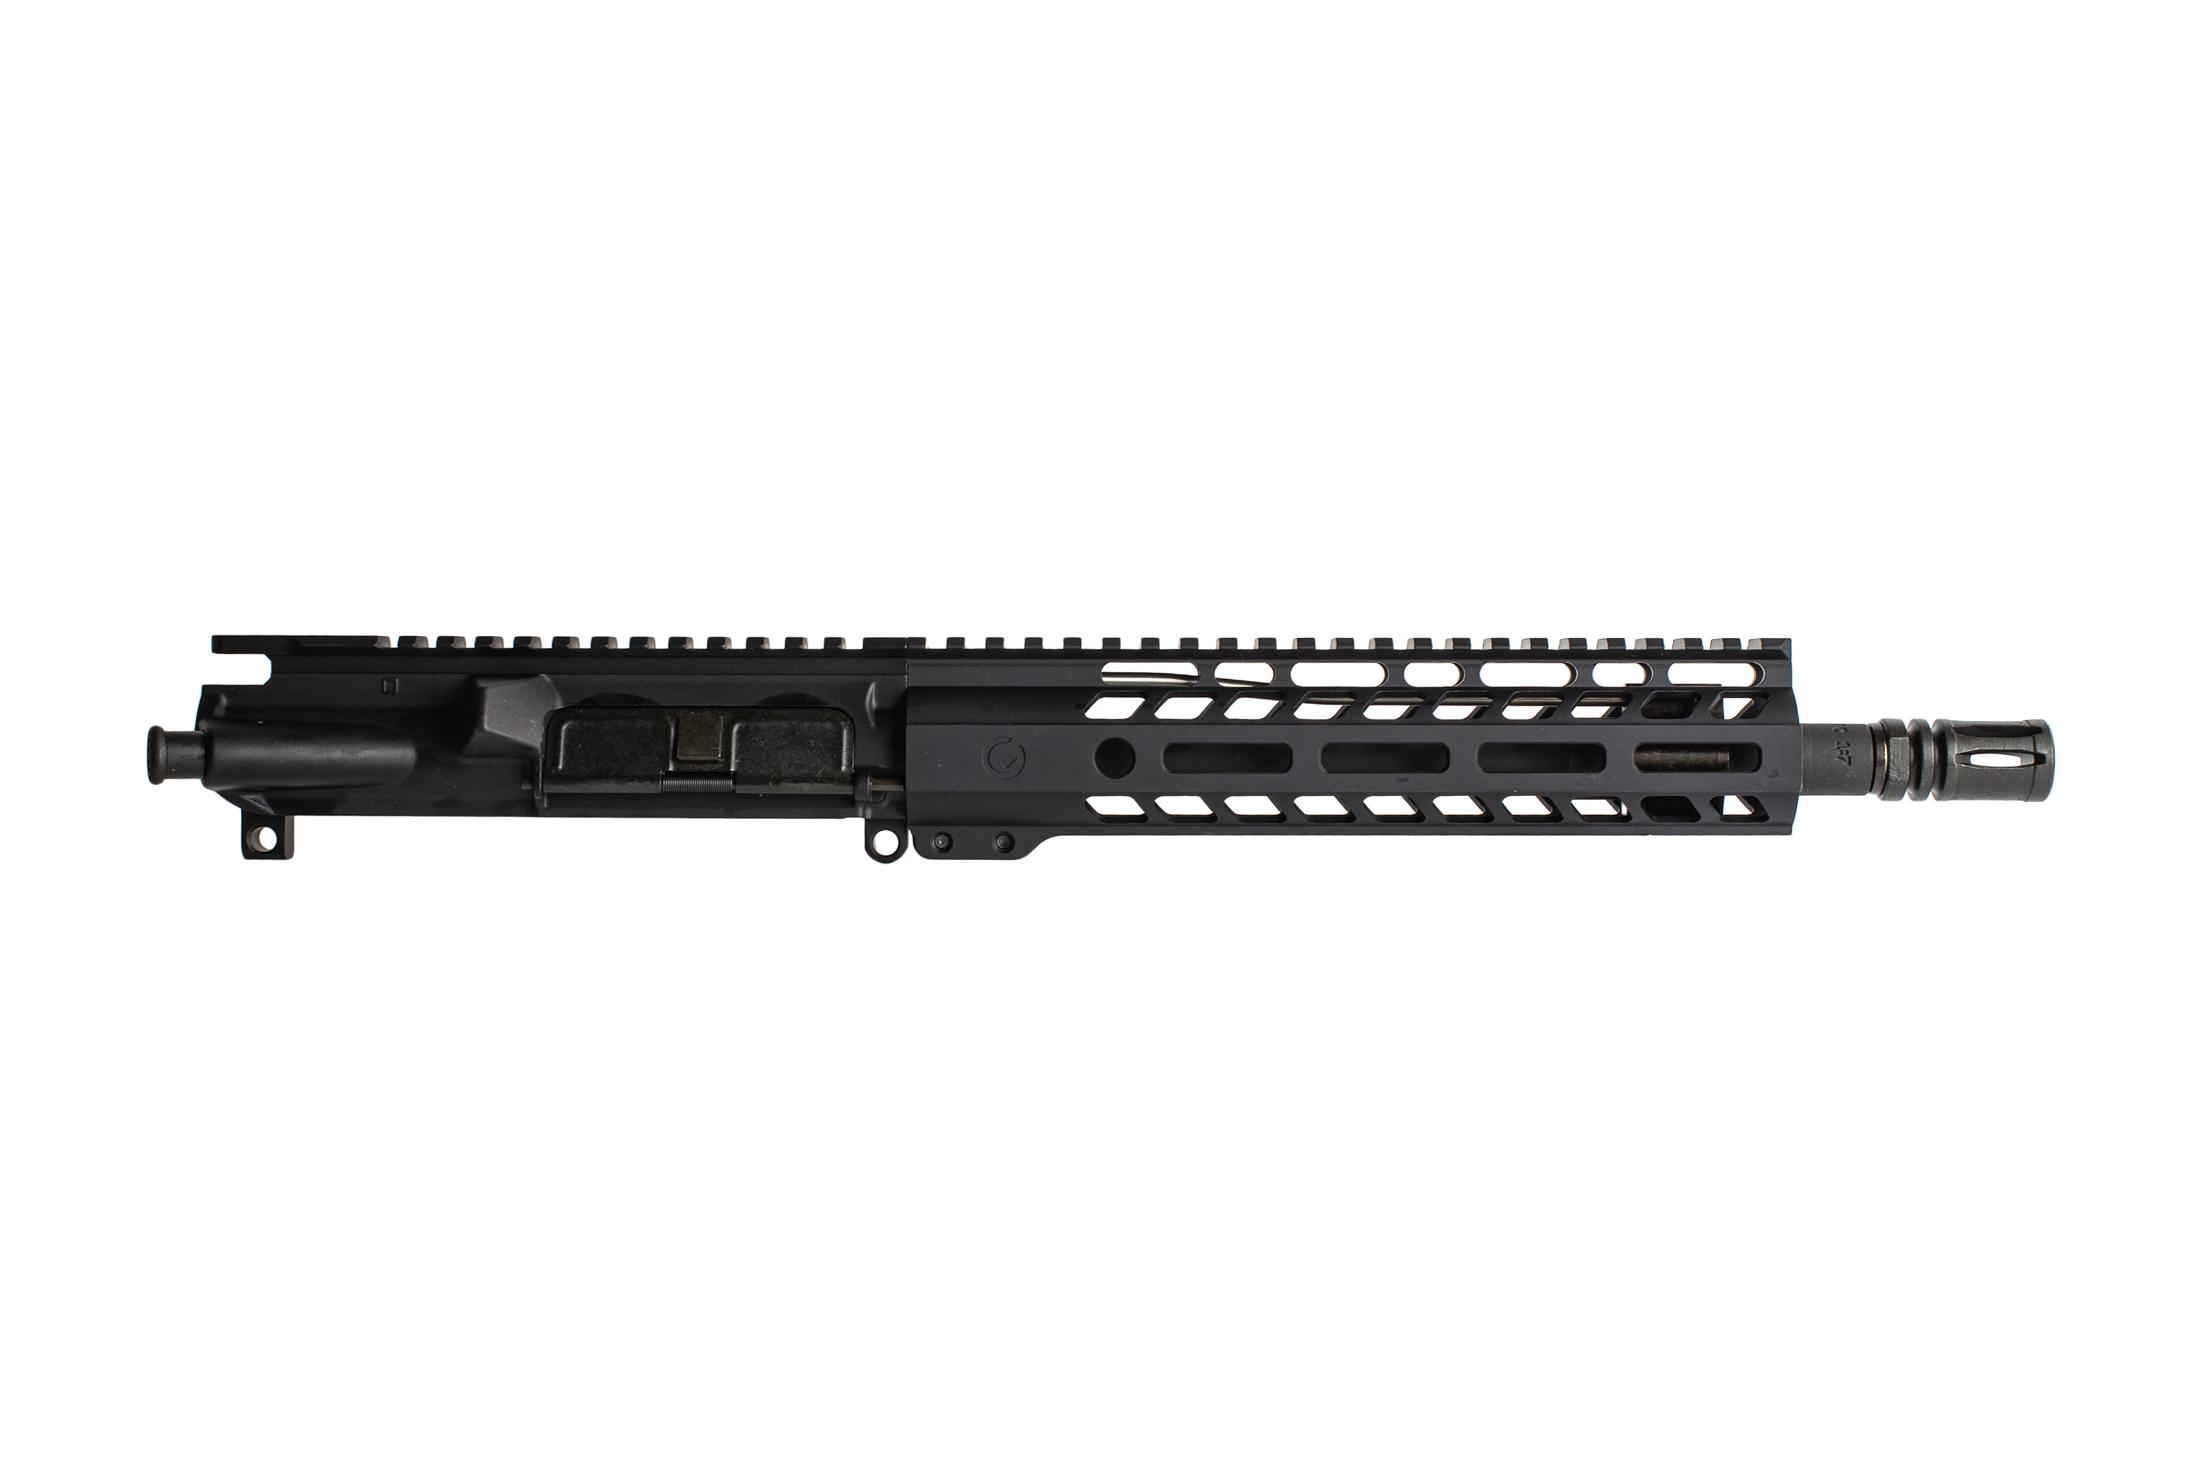 Ghost Firearms ELITE 10.5 barreled AR15 upper receiver in 5.56 NATO with M-LOK rail and carbine gas system